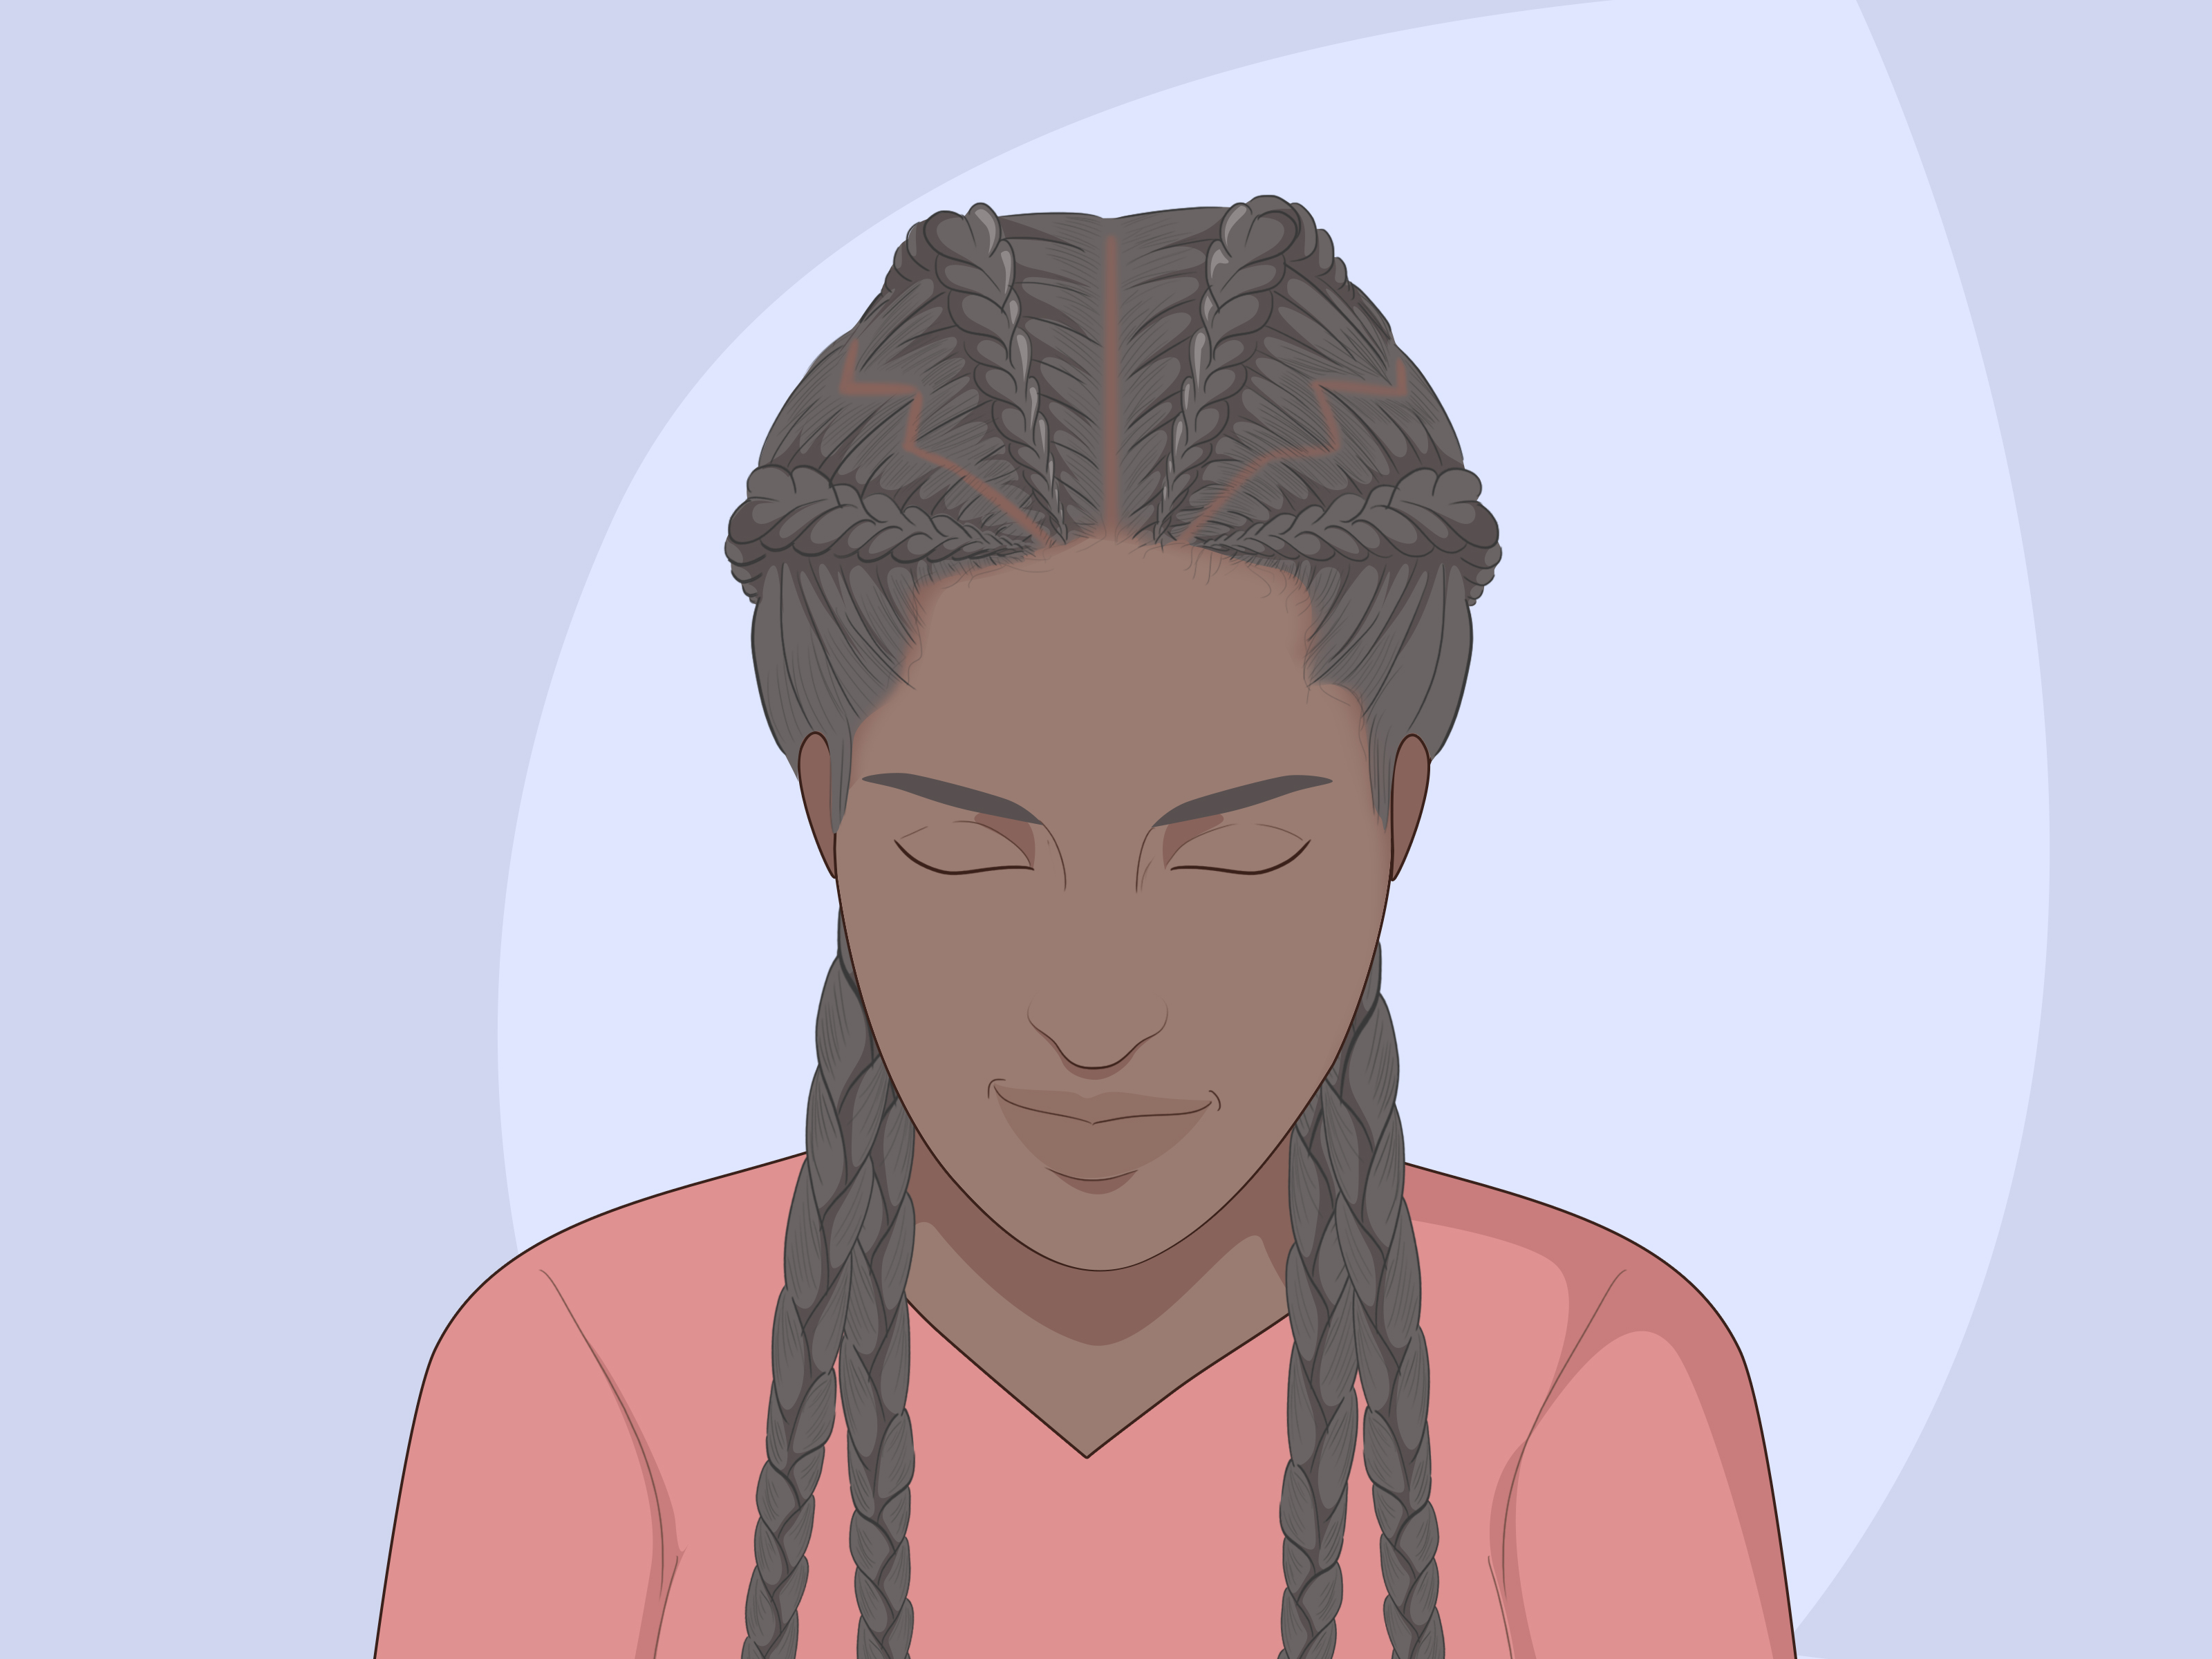 Most Up To Date Side Parted Loose Cornrows Braided Hairstyles Inside How To Braid Cornrows: 11 Steps (With Pictures) – Wikihow (View 16 of 20)